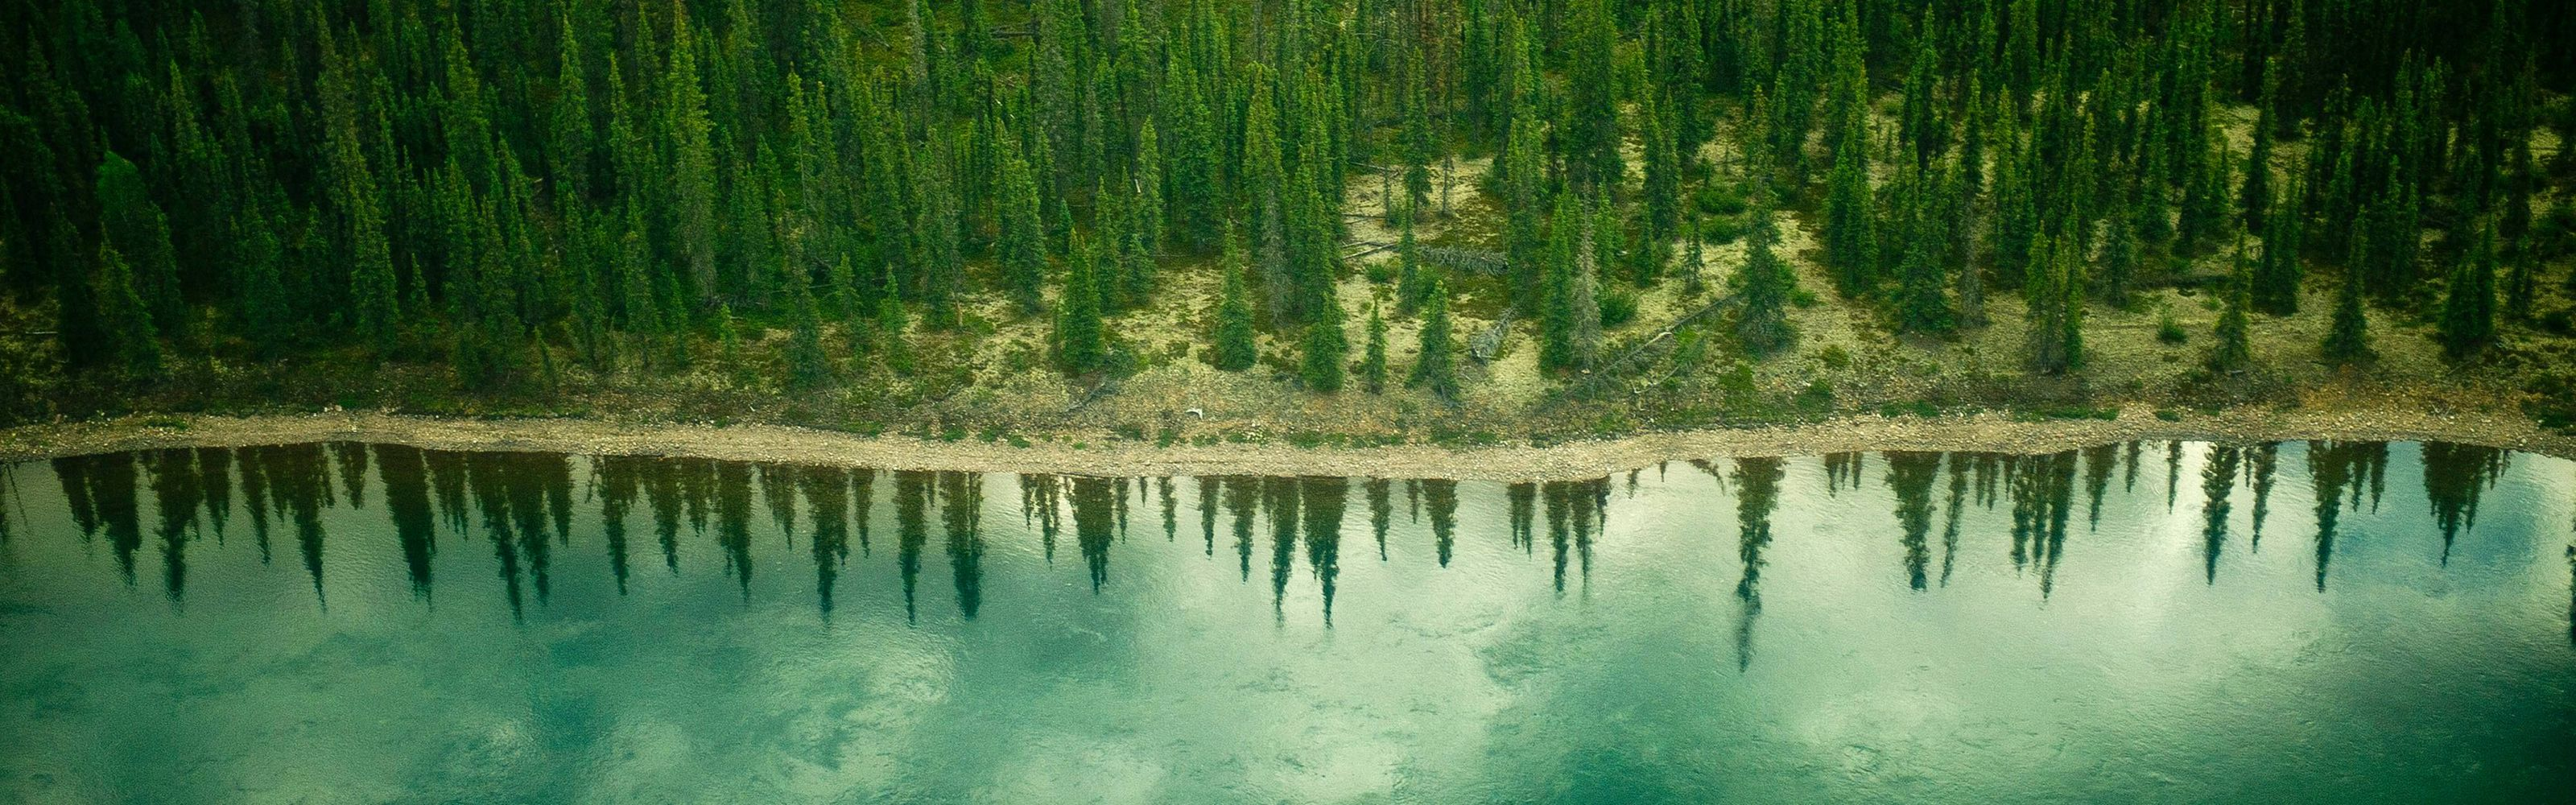 Aerial view of the Thelon River and forest landscape of Canada's far northern Thelon Game Sanctuary.